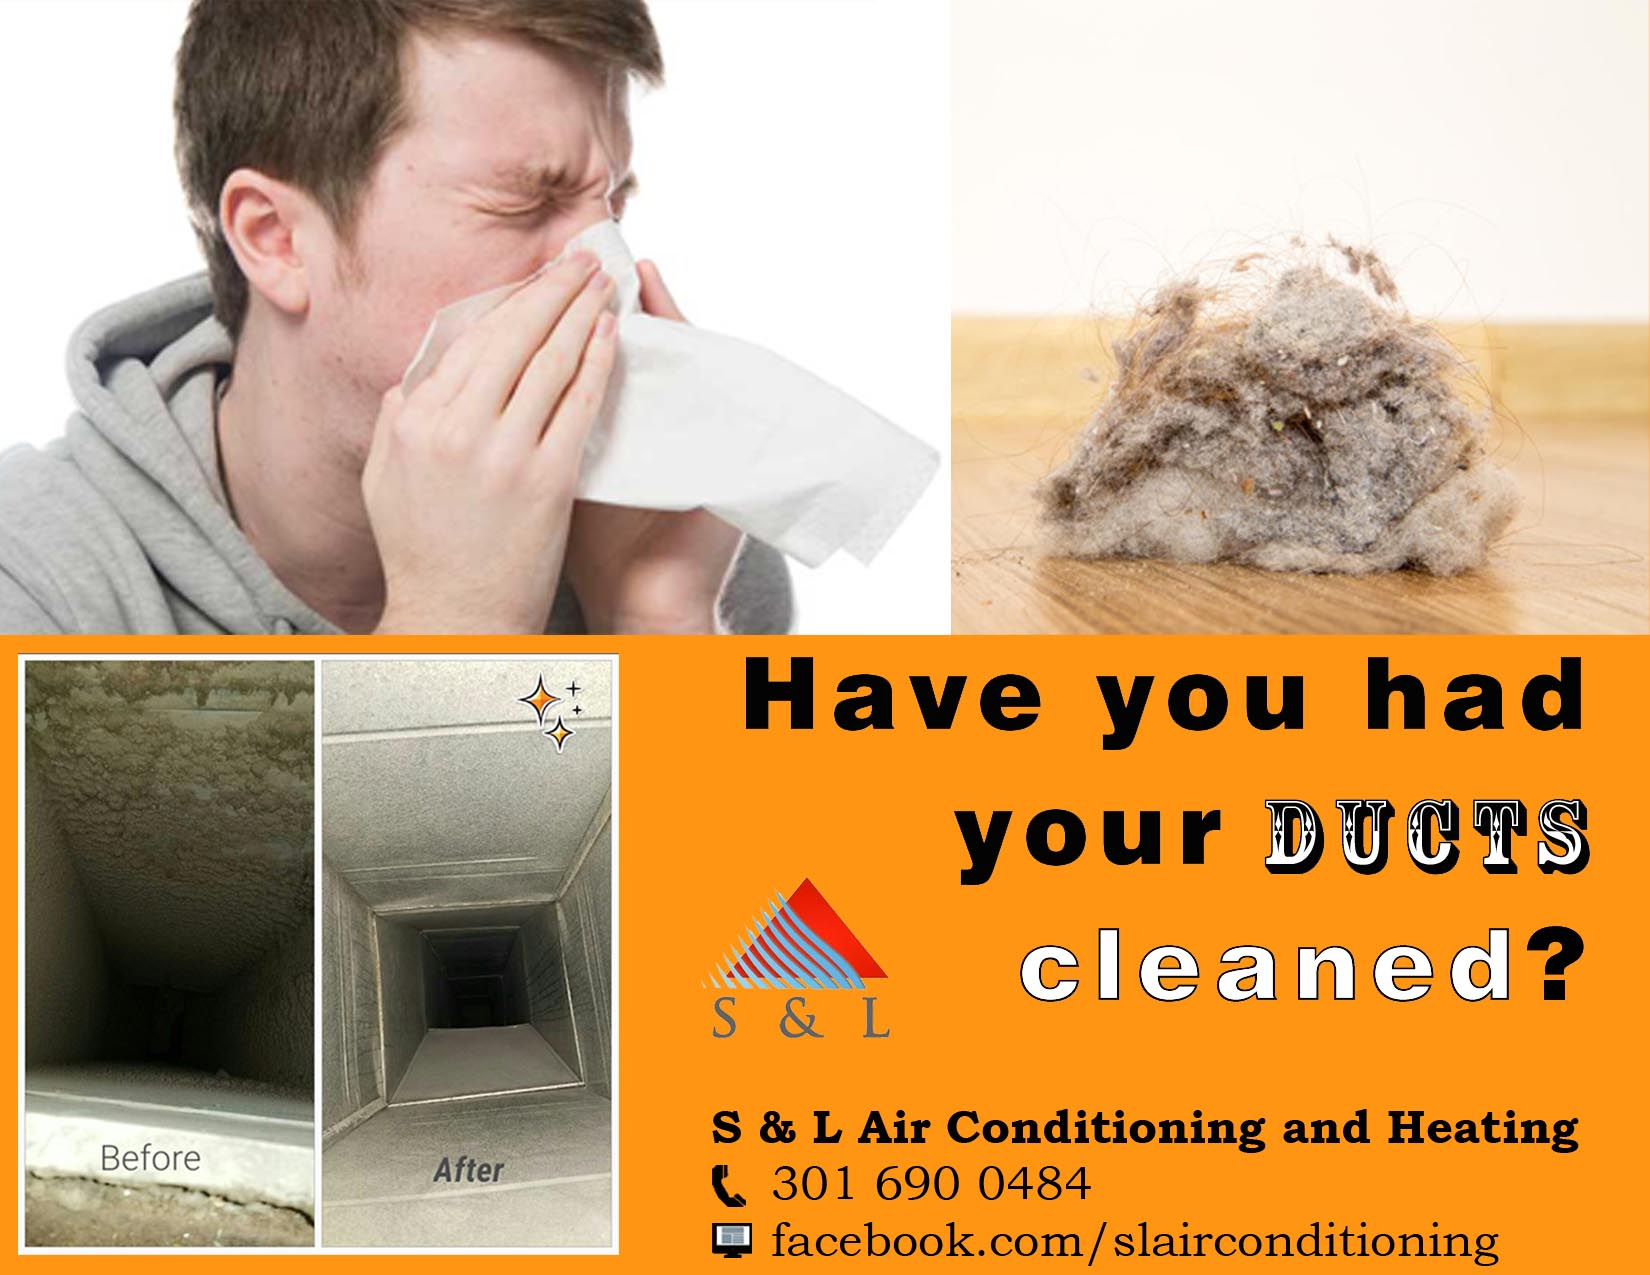 duct-cleaning-advertasement-maryland